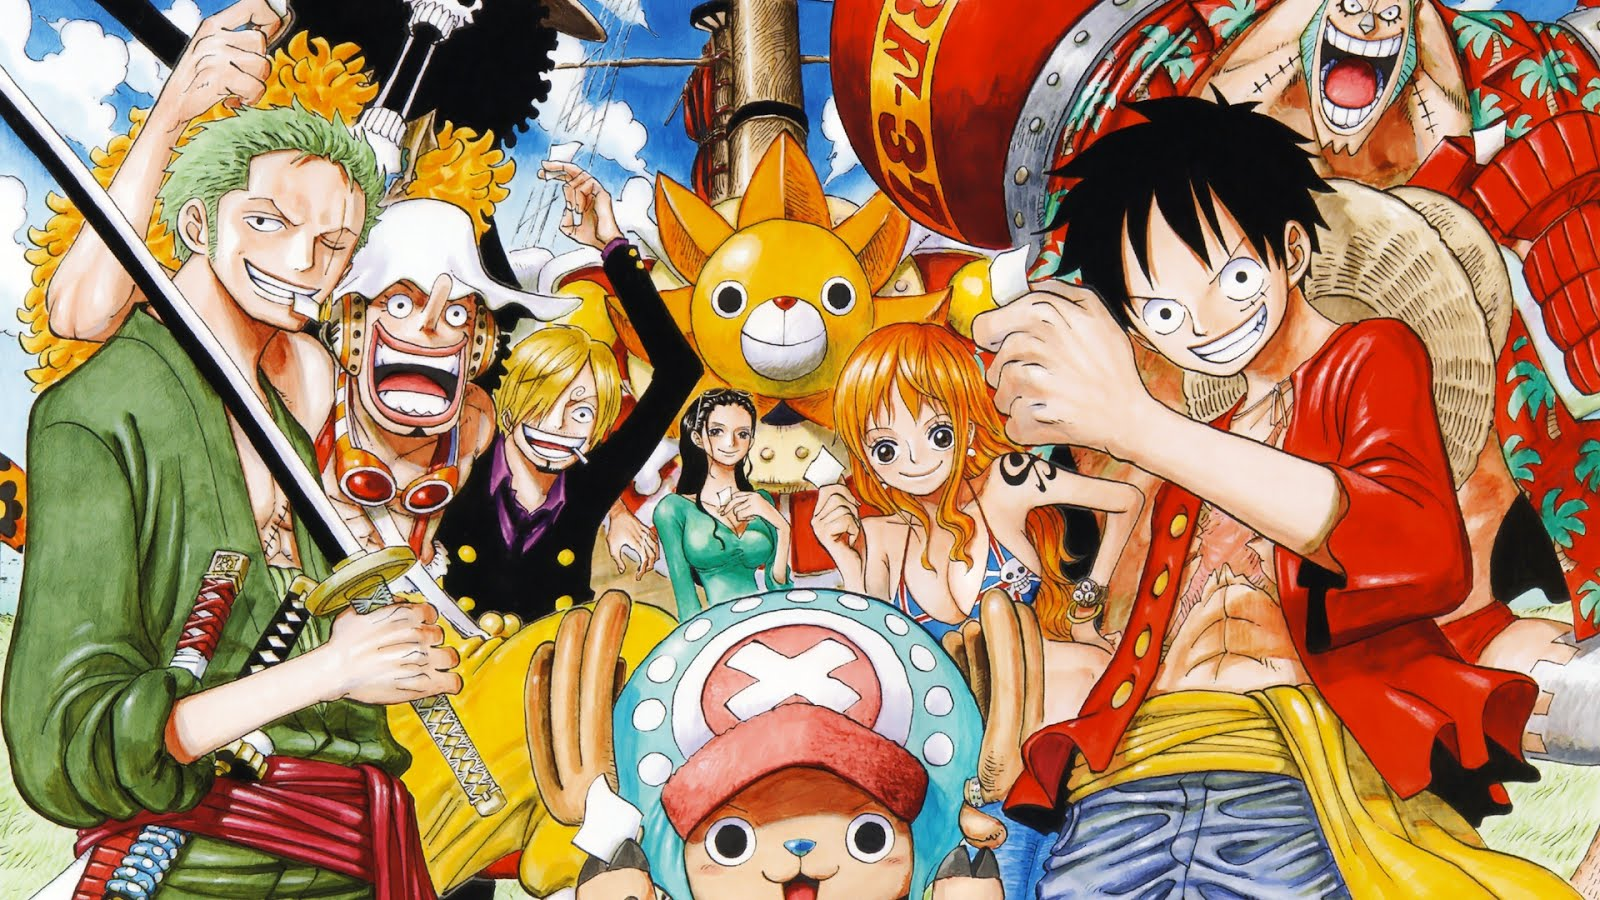 One piece episode 845 english subbed | onepiece360.